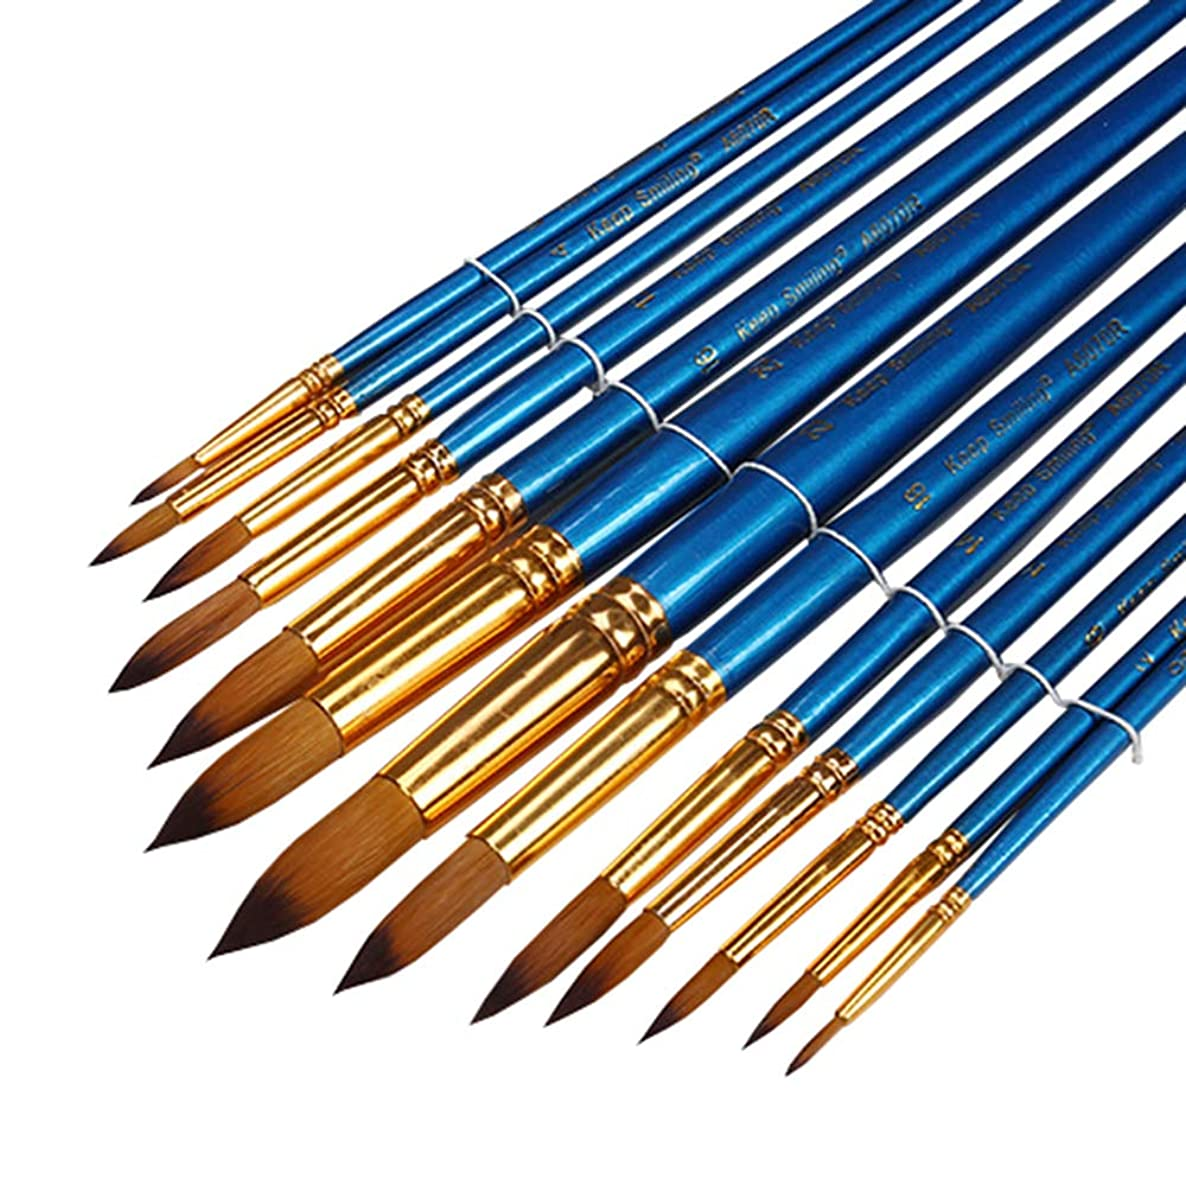 13Pieces Round Pointed Tip Brushes Art Paint Brush Set with Big and Long Handle for Acrylic Watercolor Oil Painting